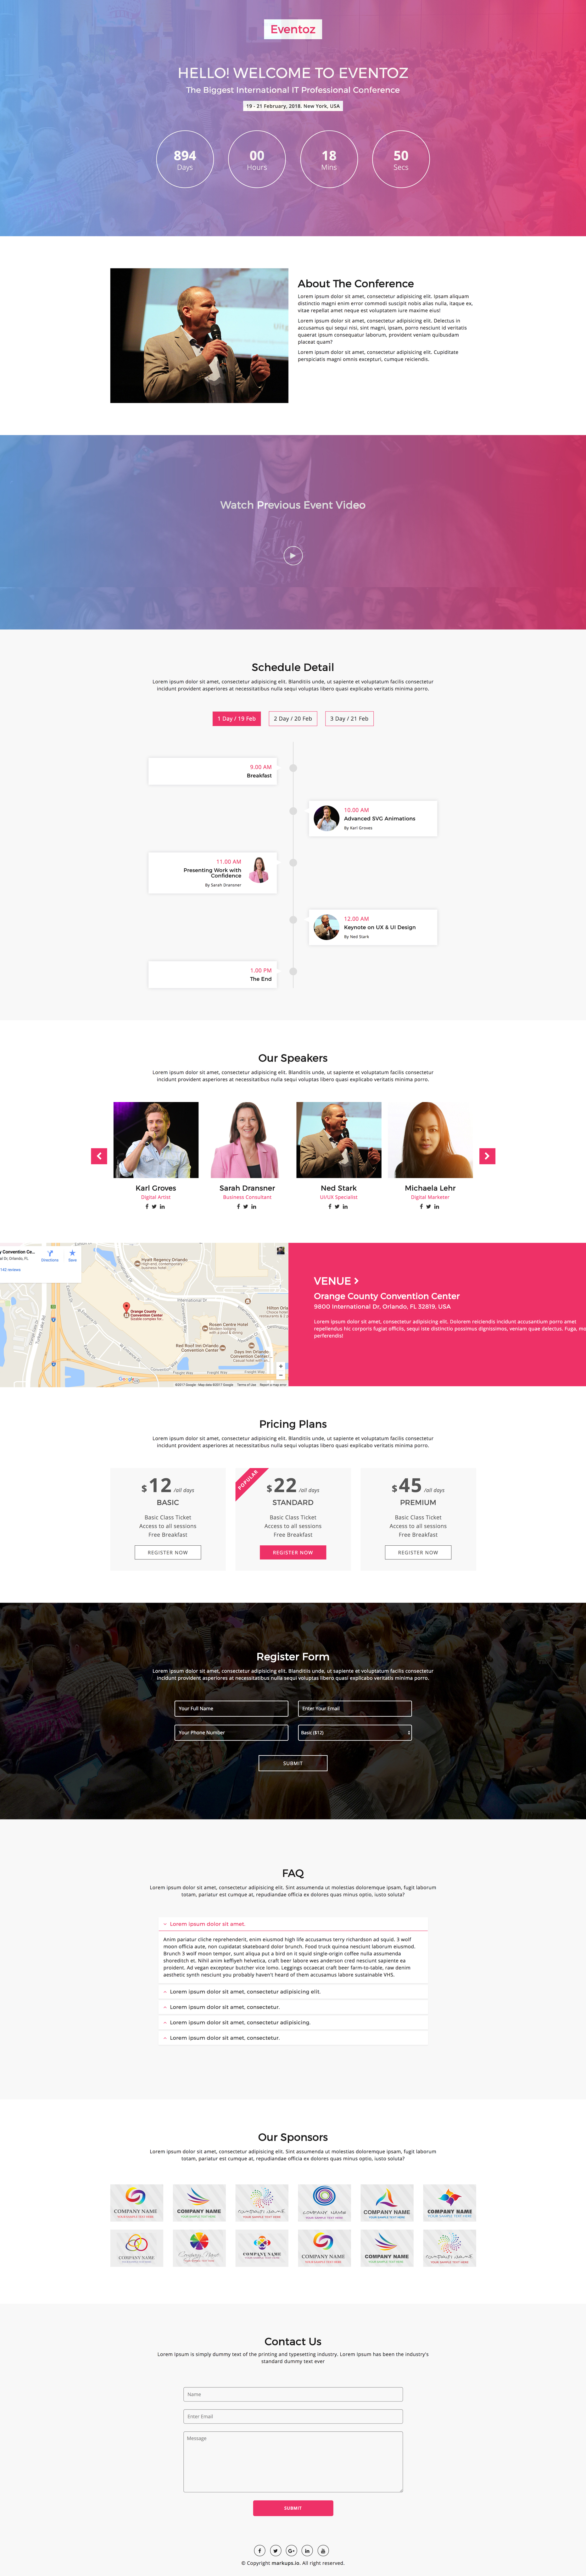 Eventoz Free Event Landing Page Template Download Now Http - Event landing page template free